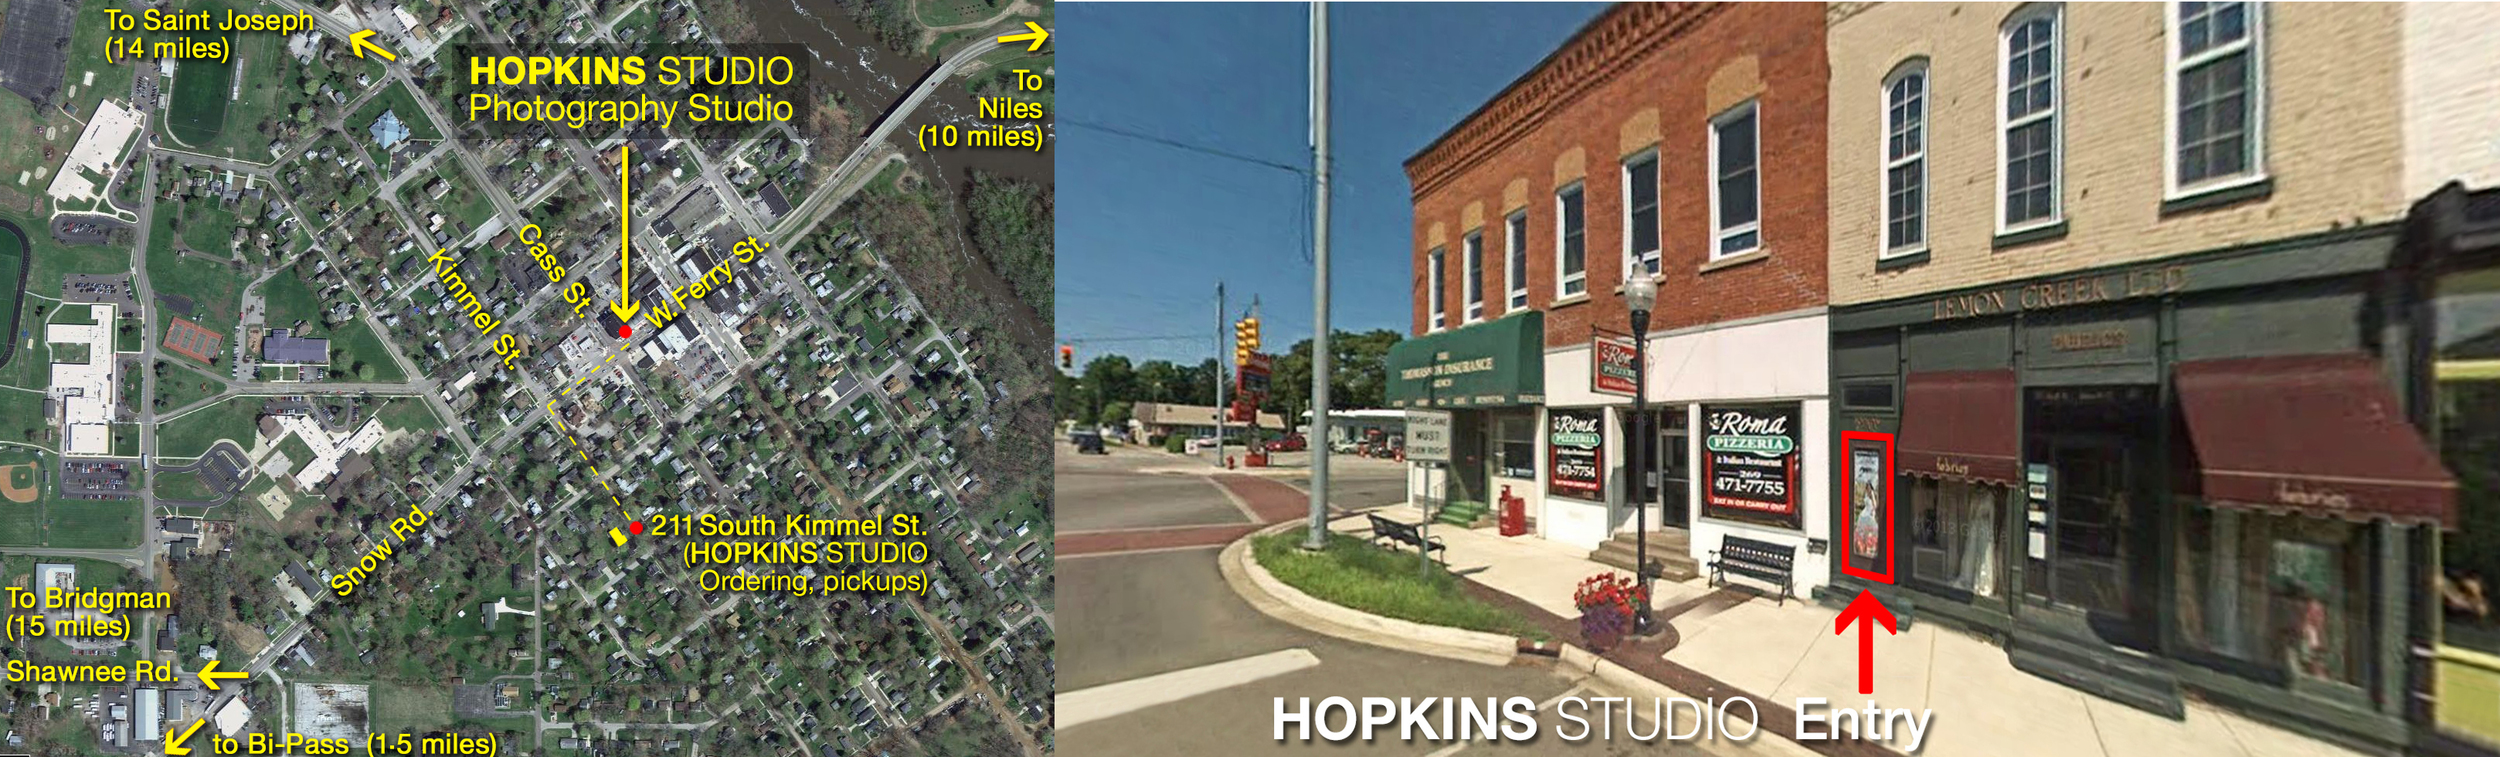 HOPKINS STUDIO Location Map & Photo of Studio Entry.jpg